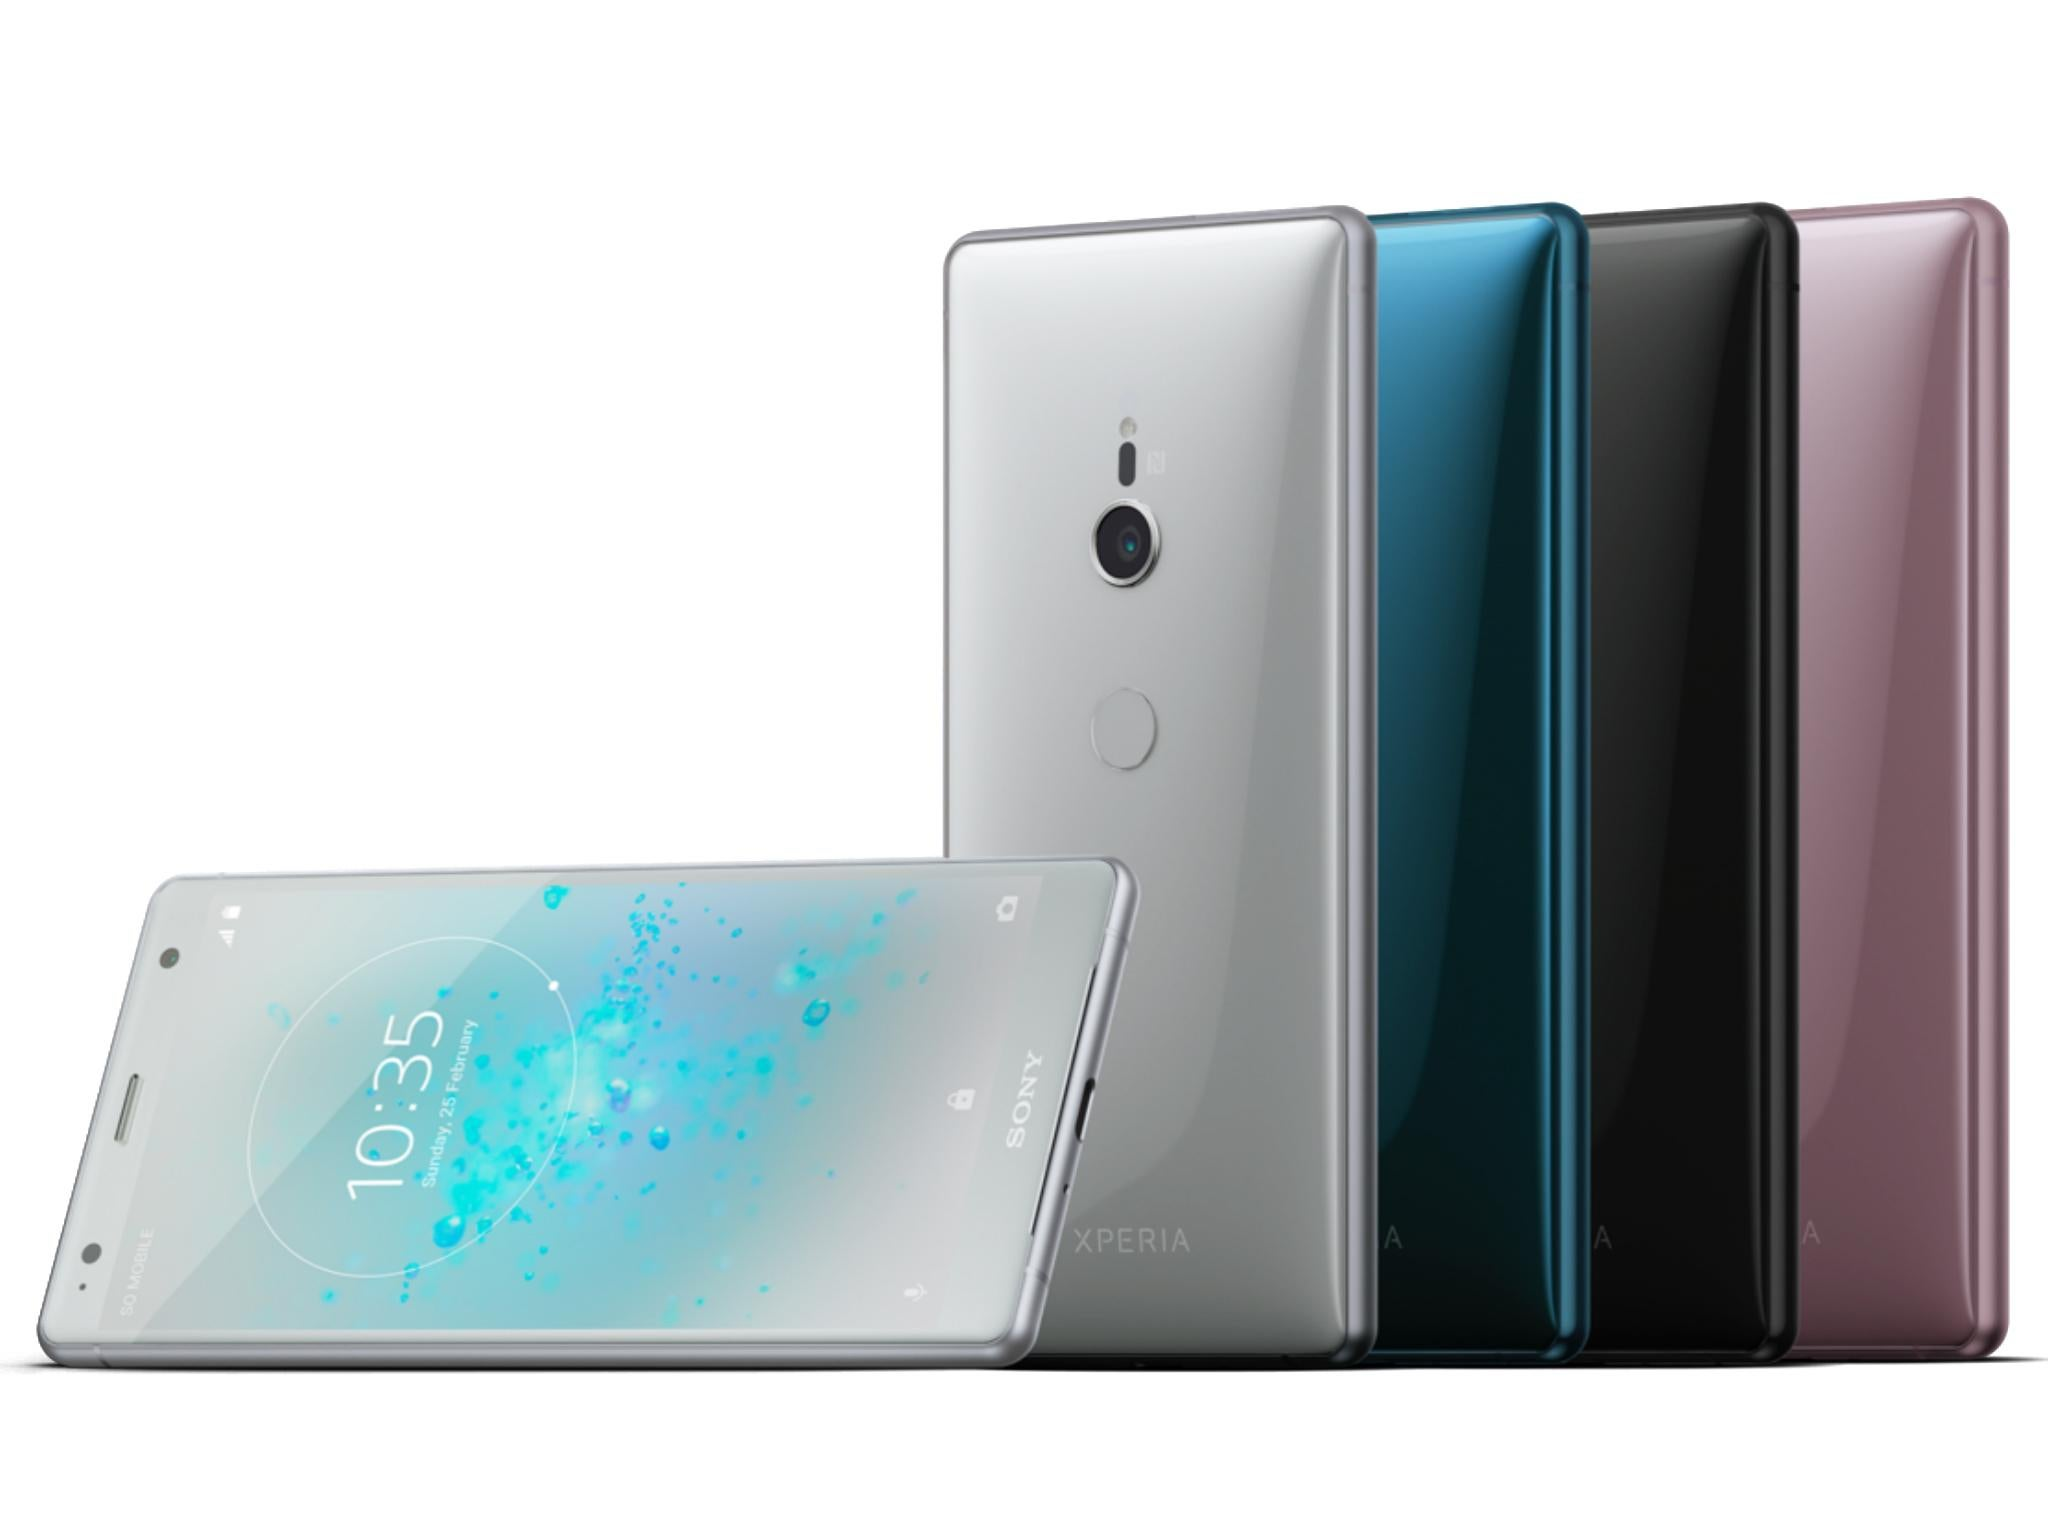 Sony Xperia XZ2: Release date, specs, features - everything